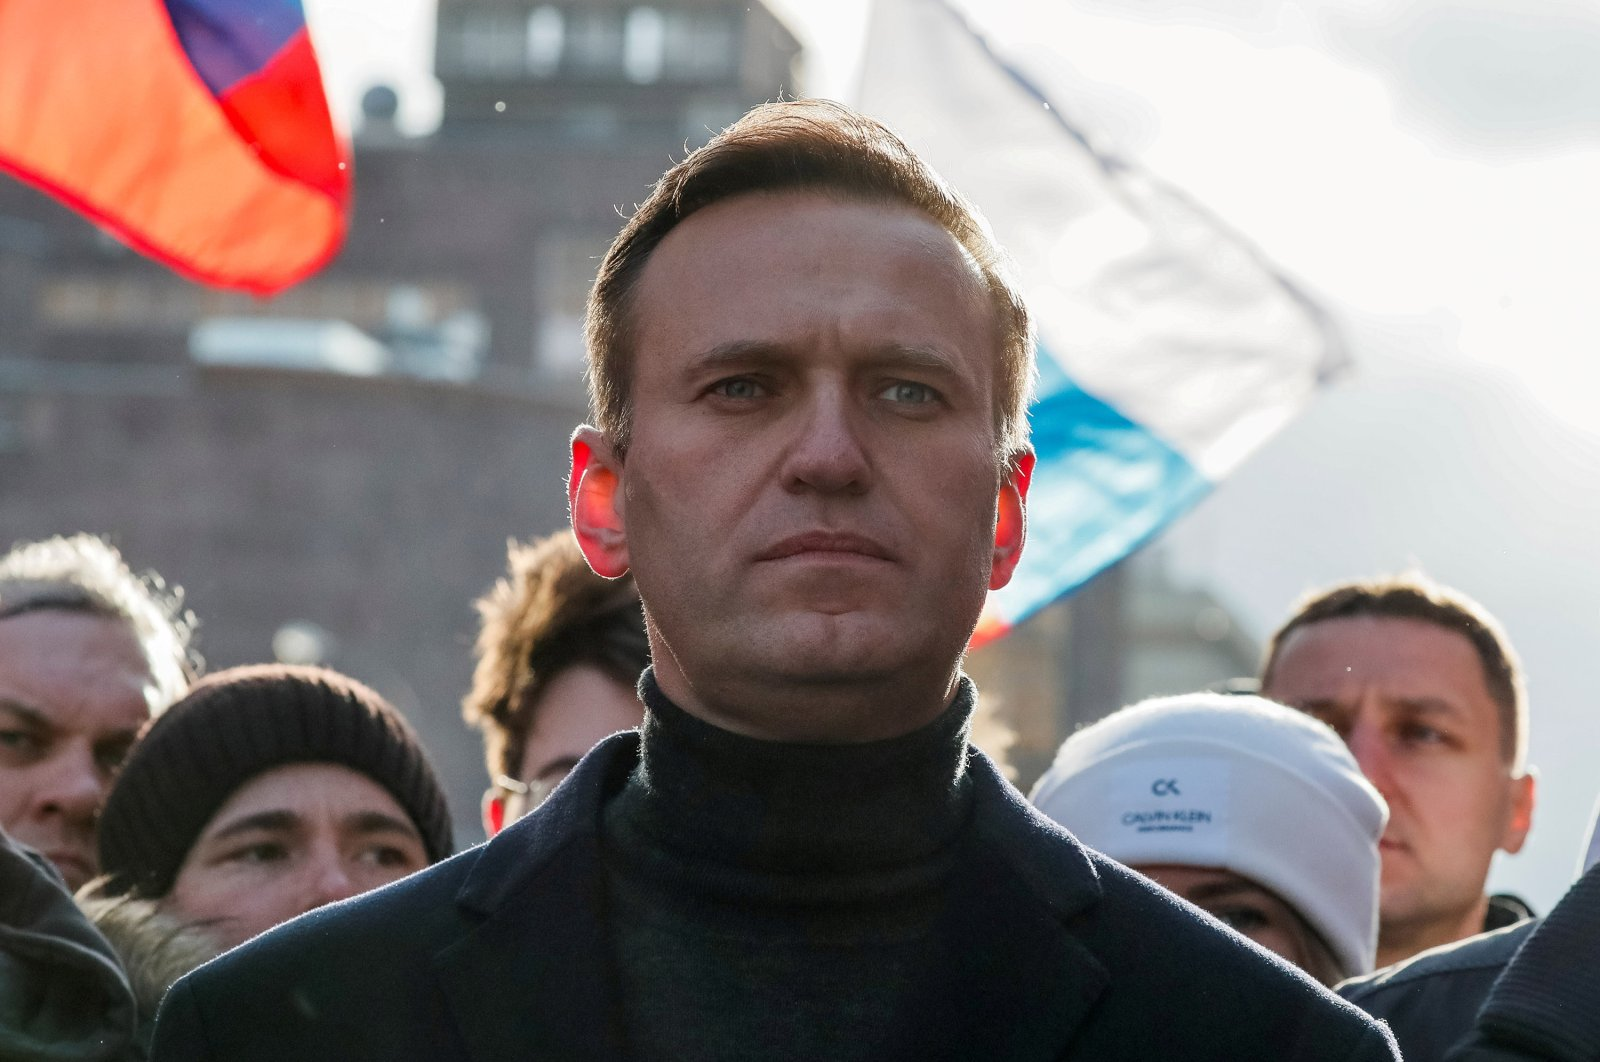 Russian opposition politician Alexei Navalny takes part in a rally to mark the 5th anniversary of opposition politician Boris Nemtsov's murder and to protest against proposed amendments to the country's constitution, in Moscow, Russia February 29, 2020. (Reuters Photo)